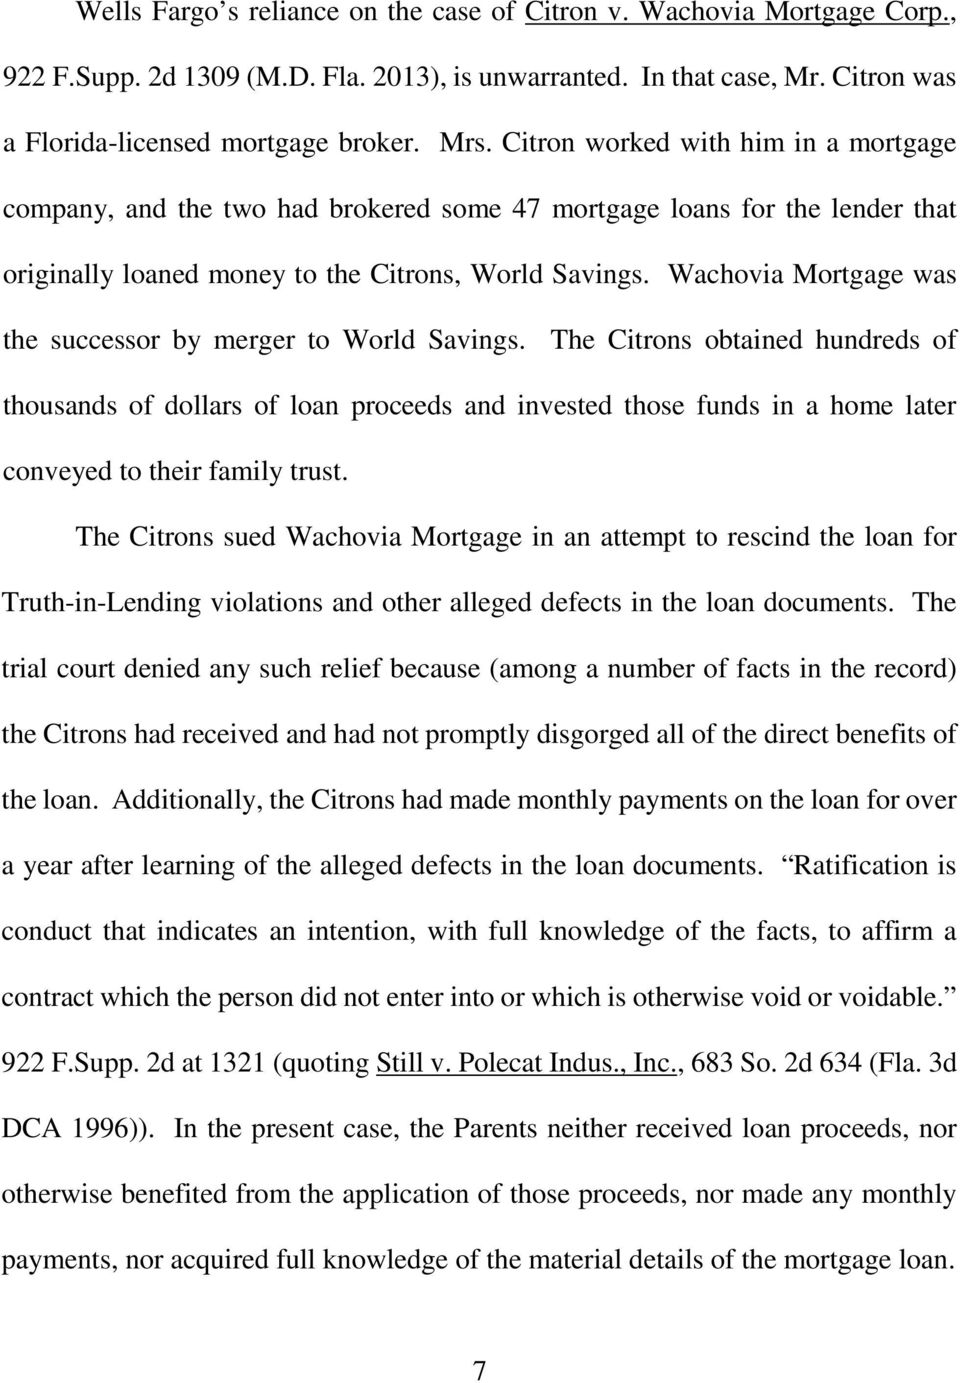 wachovia mortgage was the successor by merger to world savings